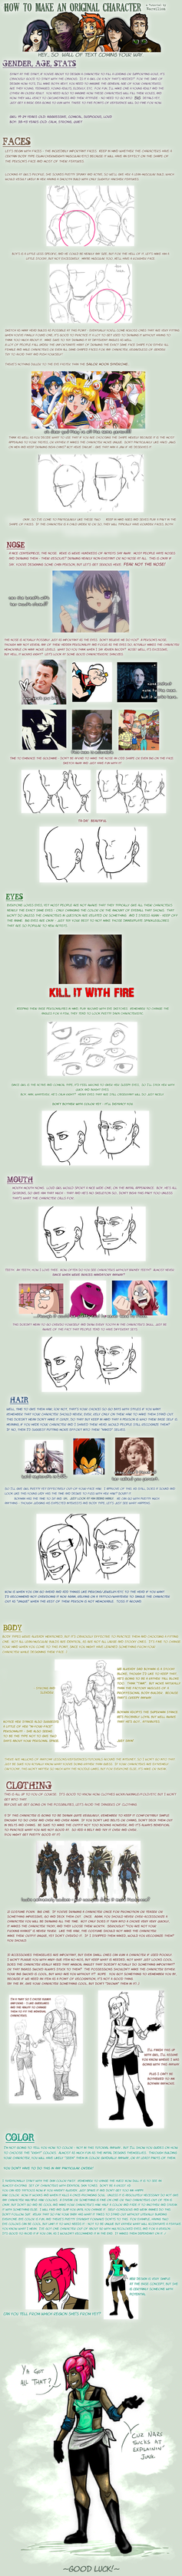 Tutorial For Character Design : Character design tutorial by narsilion on deviantart